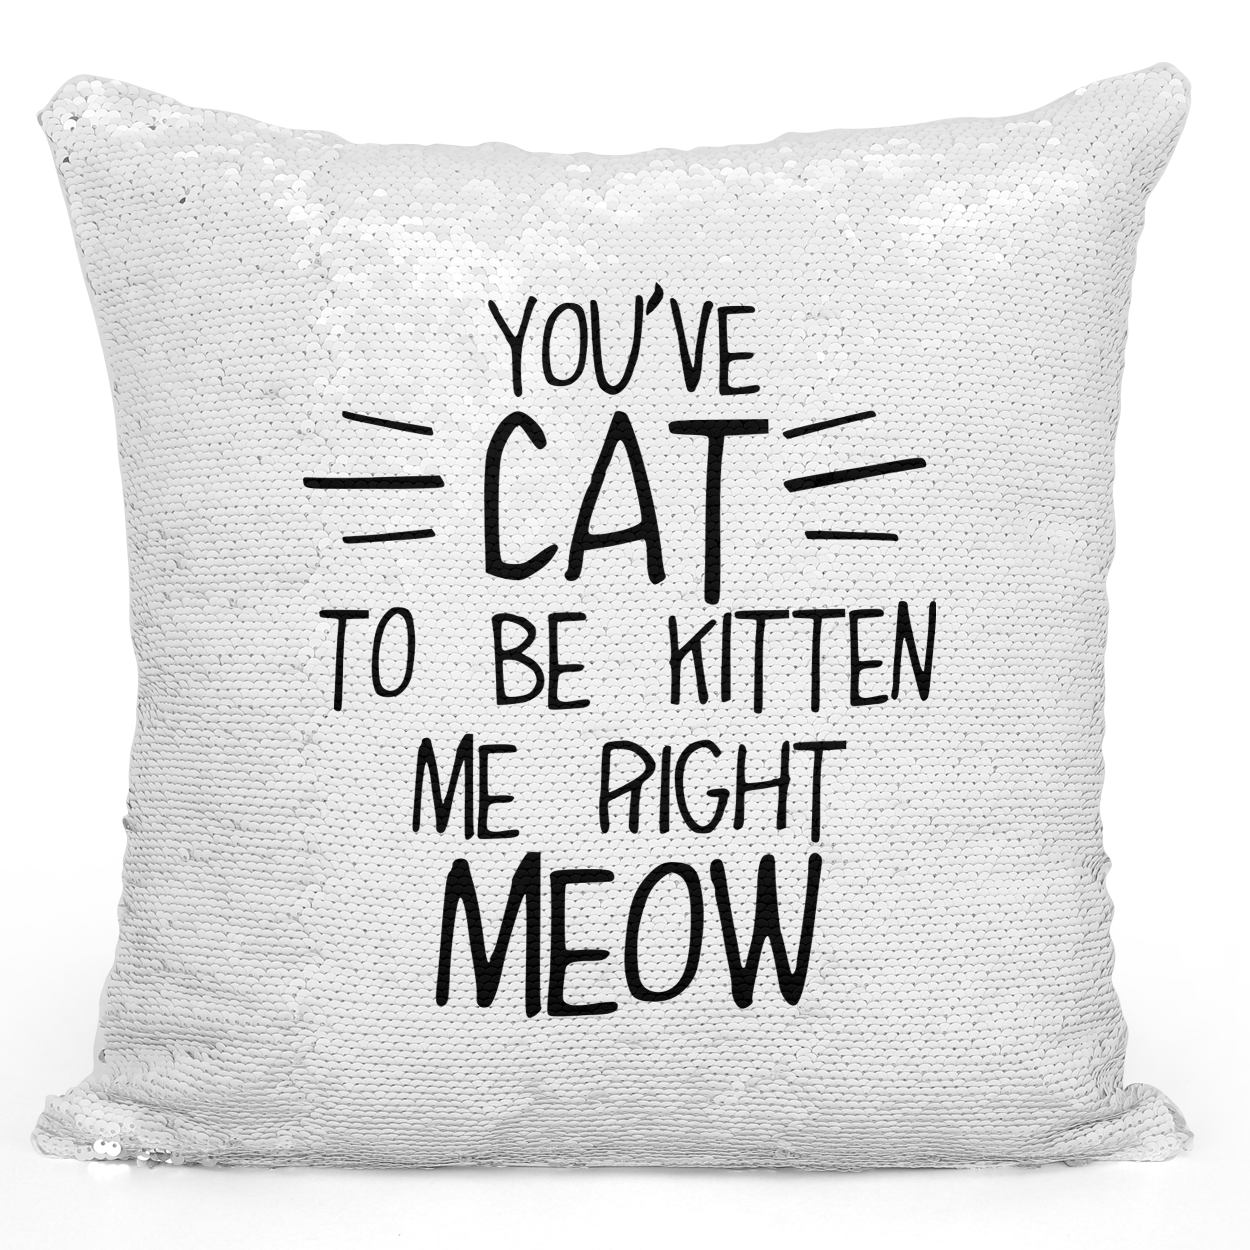 16x16 inch Sequin Throw Pillow Magic Flip Pillow Cat Kitten Meow Funny Kitty Quote Pillow Loud Universe